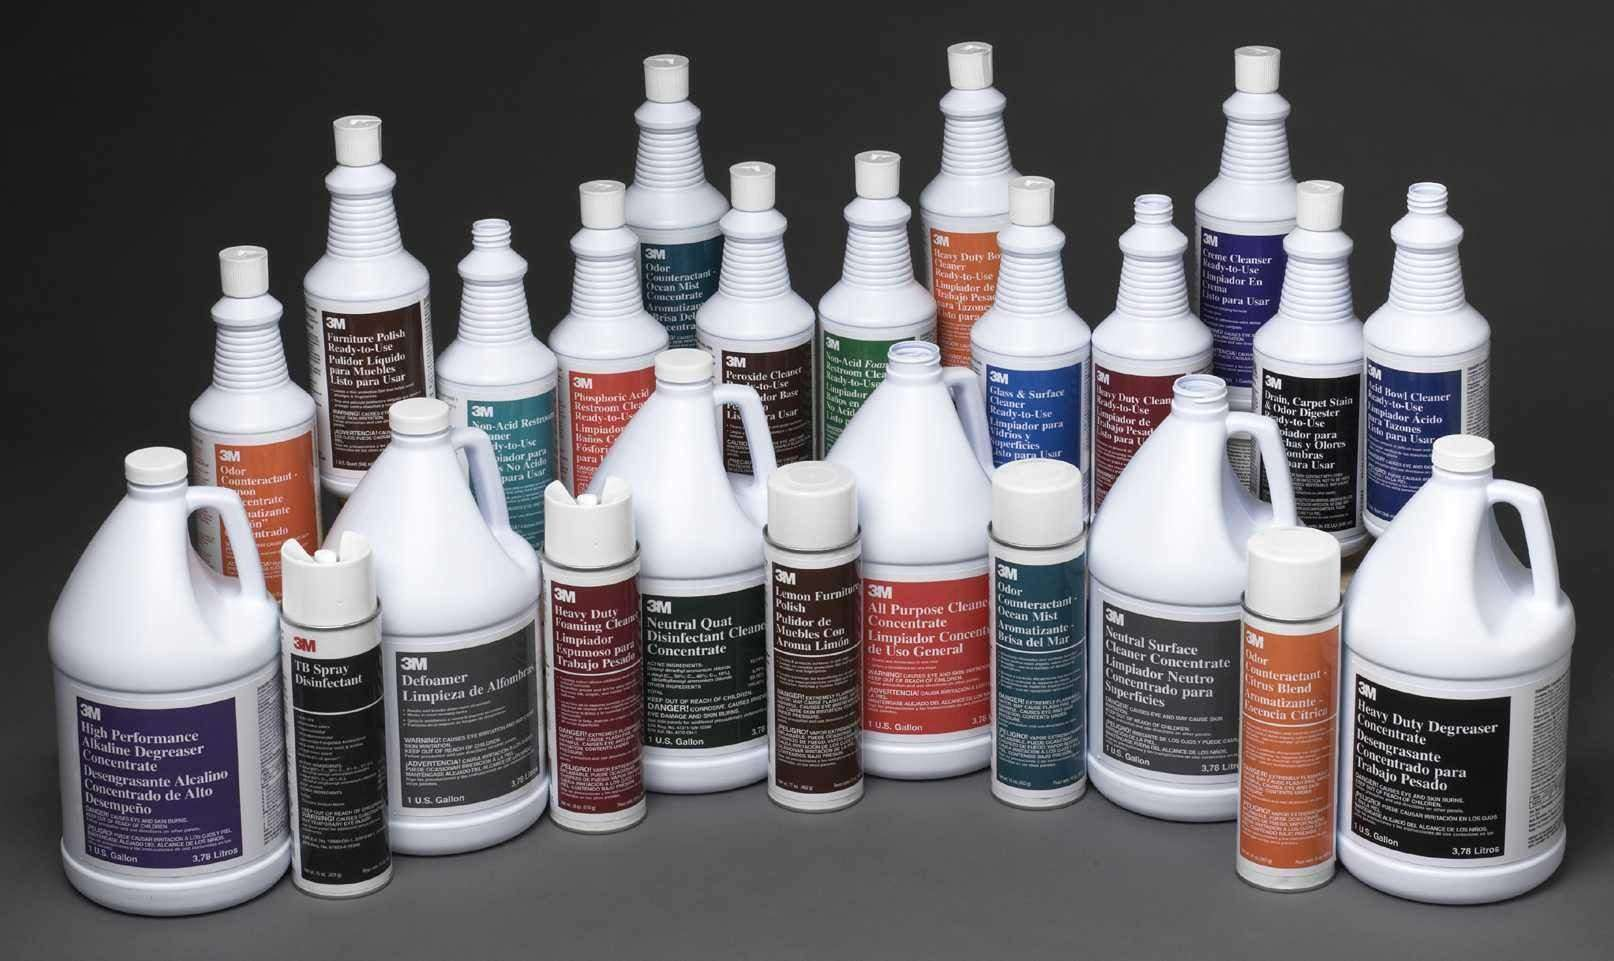 3m cleaners